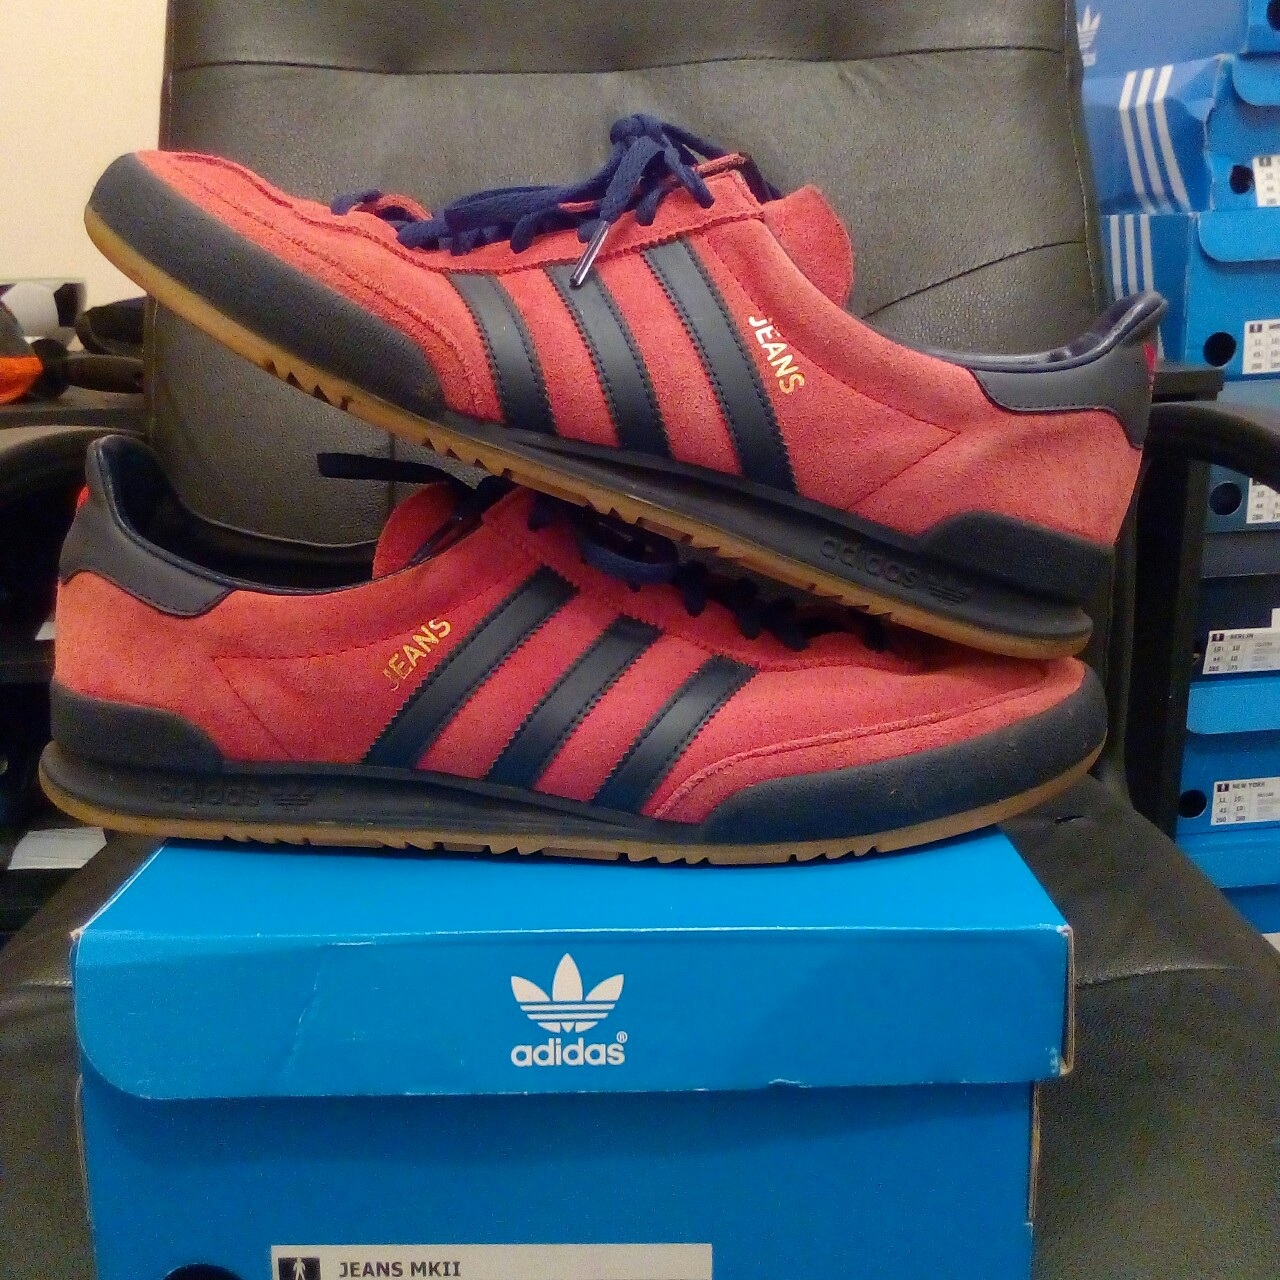 Adidas jeans MKII Red/navy/gum Size 10